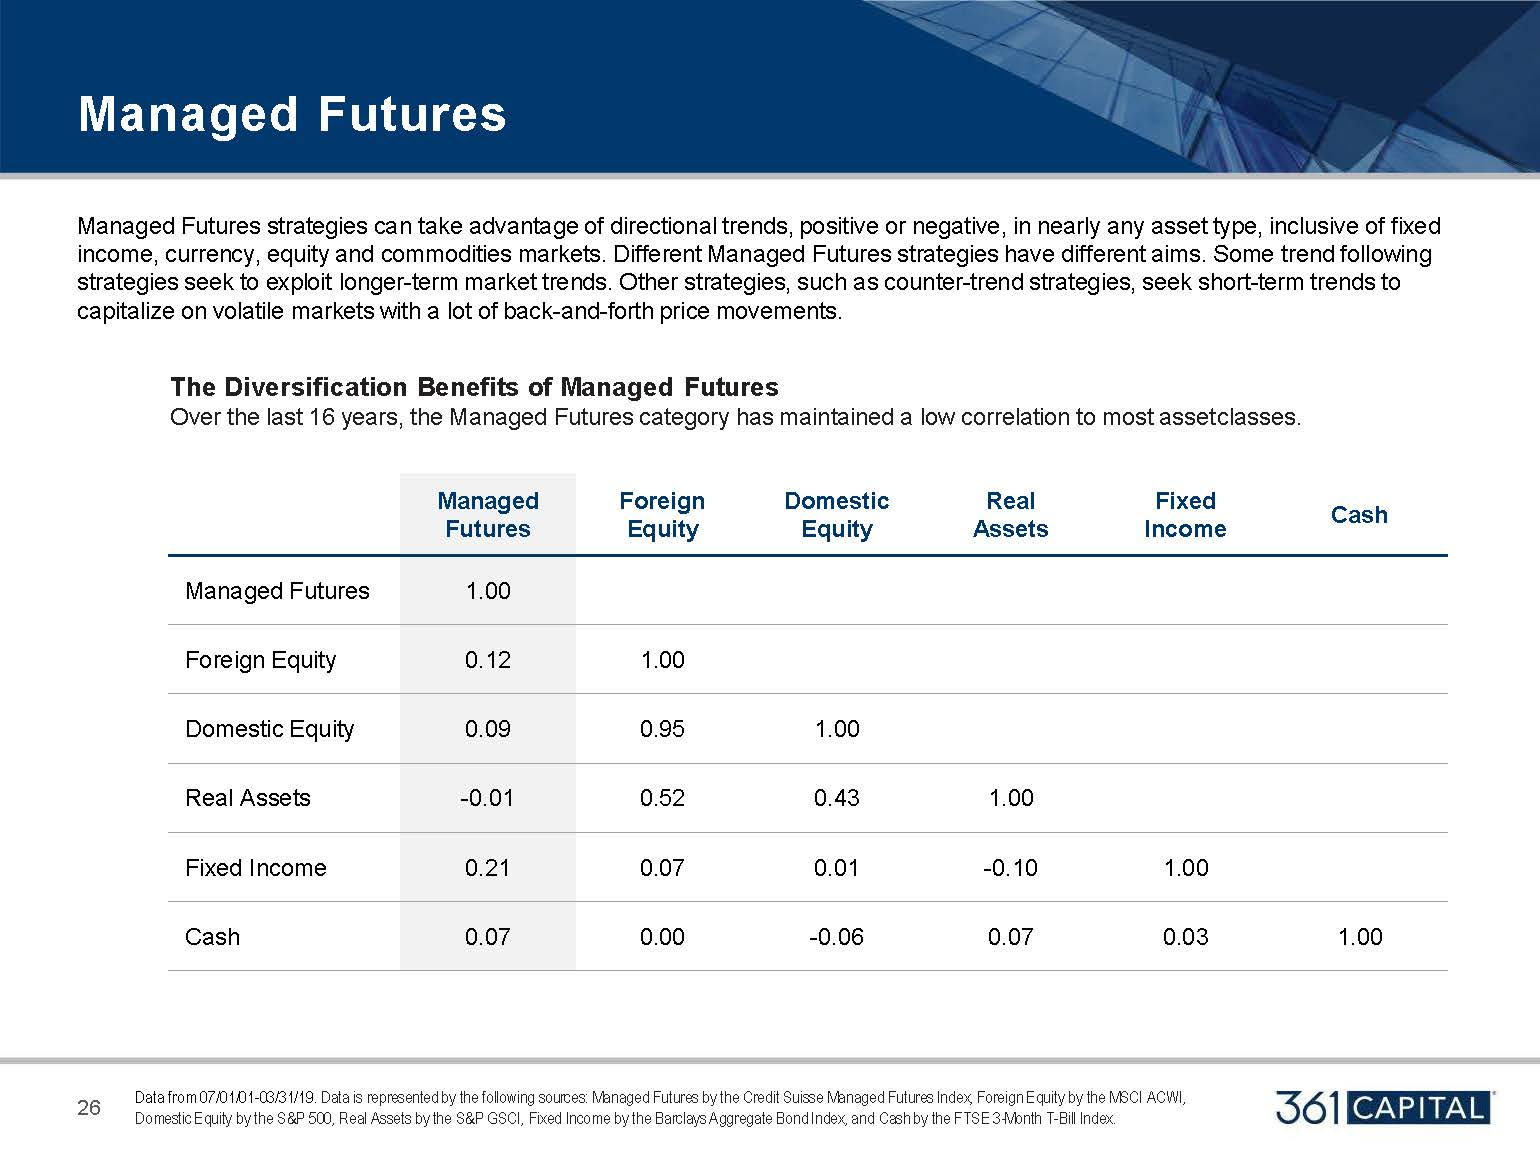 Managed Futures strategies can take advantage of directional trends, positive or negative, in nearly any asset type, inclusive of fixed income, currency, equity and commodities markets